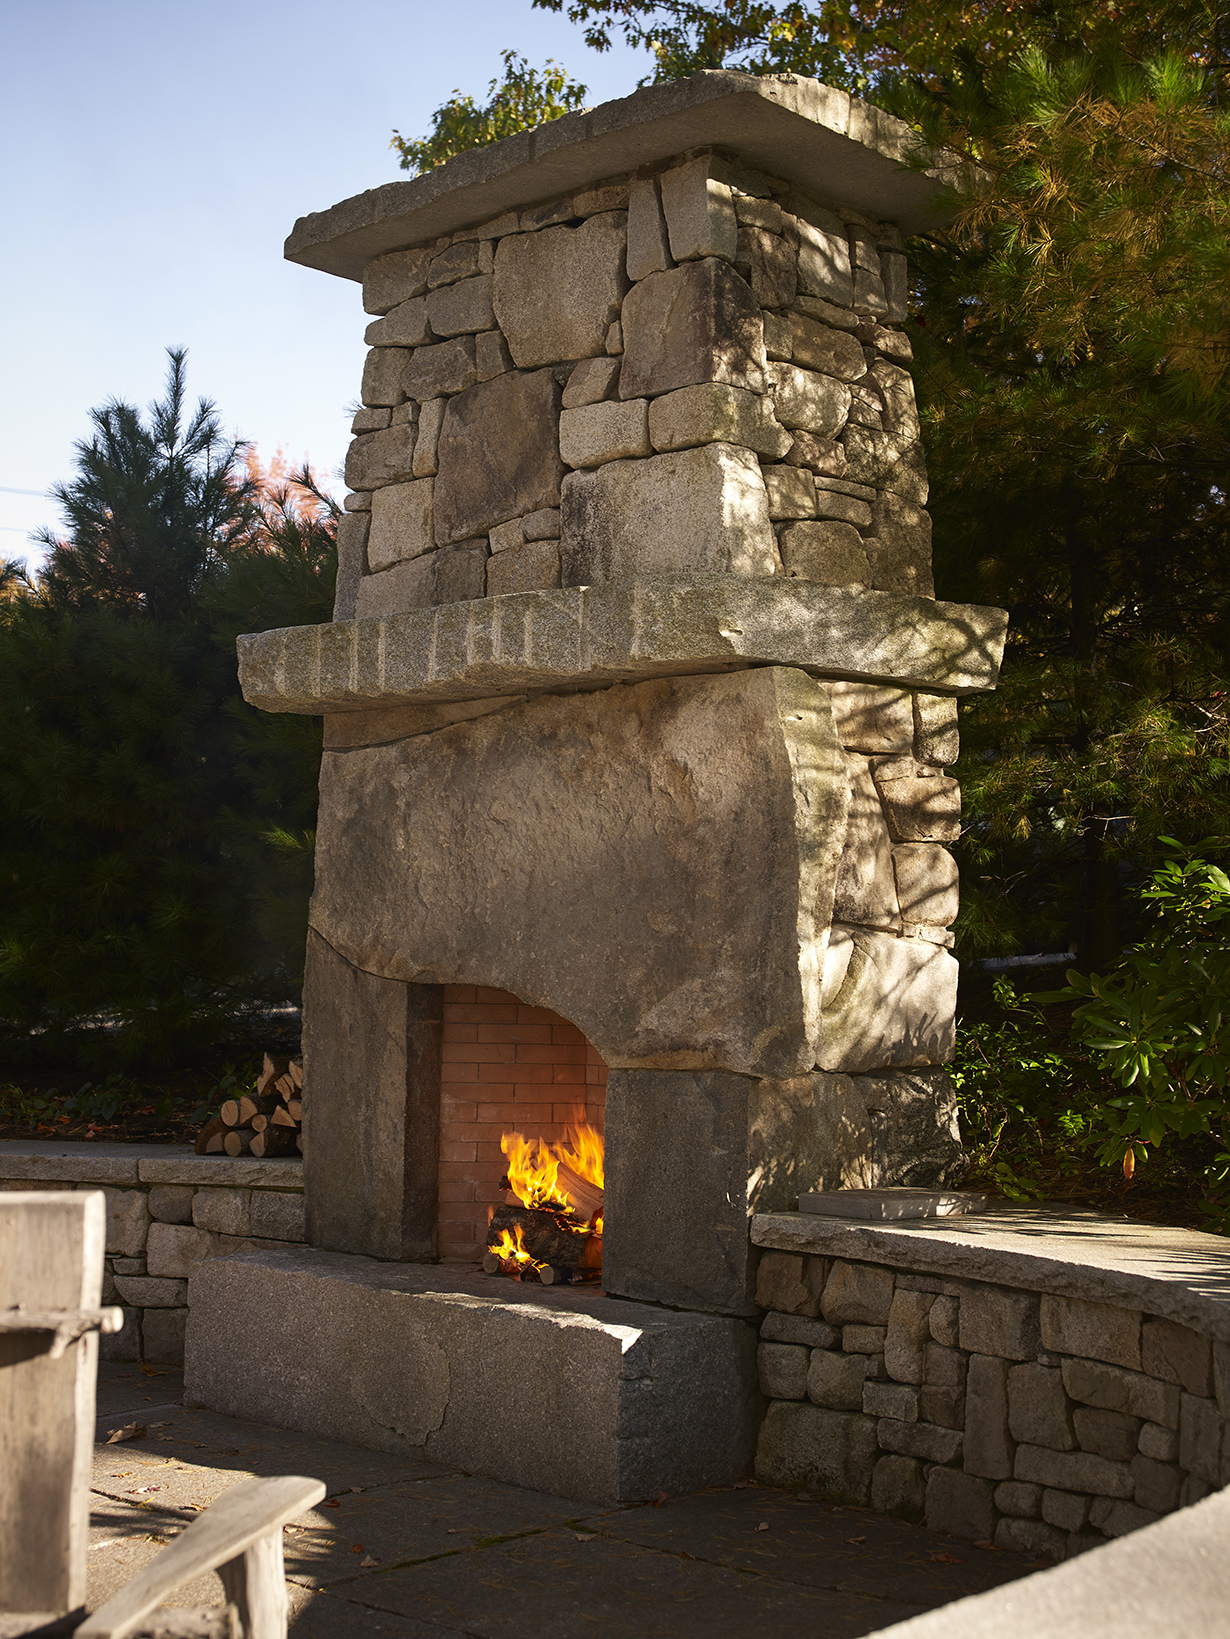 knickerbocker-group-project-grotto-outdoor-entertainment-space-outdoor-living